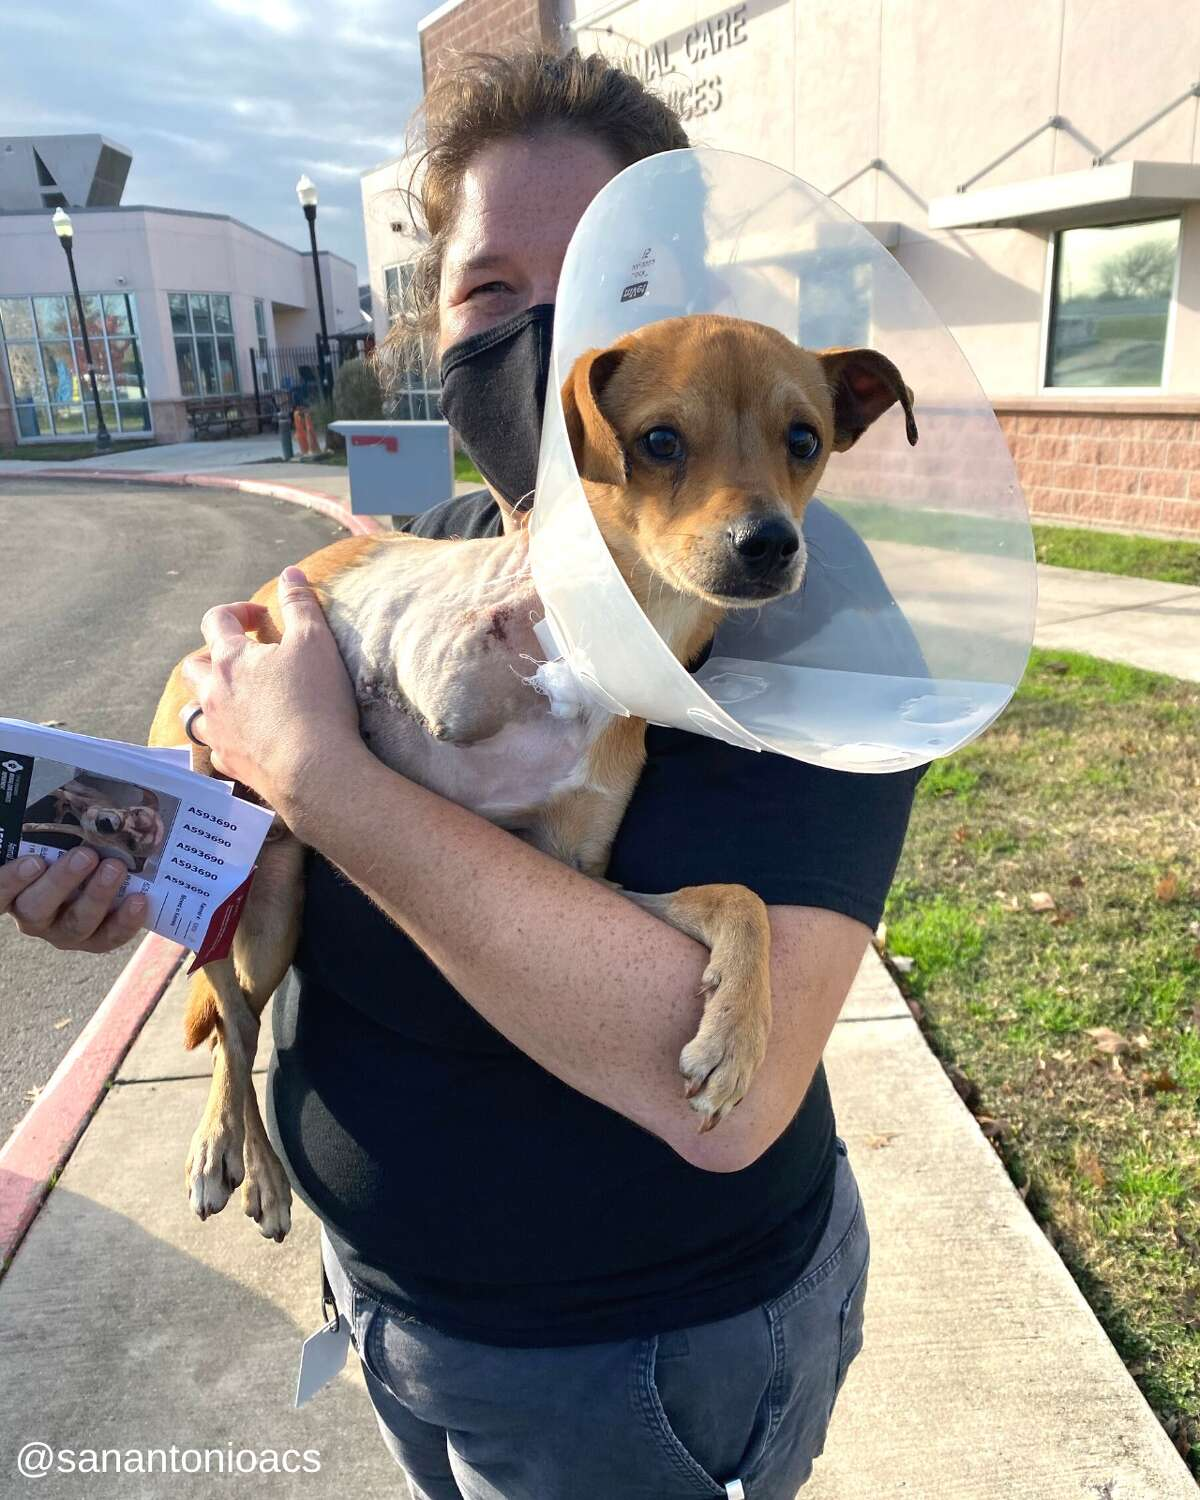 Tres, a pup found with a broken foot on the West Side of San Antonio had to get his leg amputated. After a speedy recovery, he is being transferred to the Texas Chihuahua Rescue, Inc where they will put him under their care until he's ready for adoption.